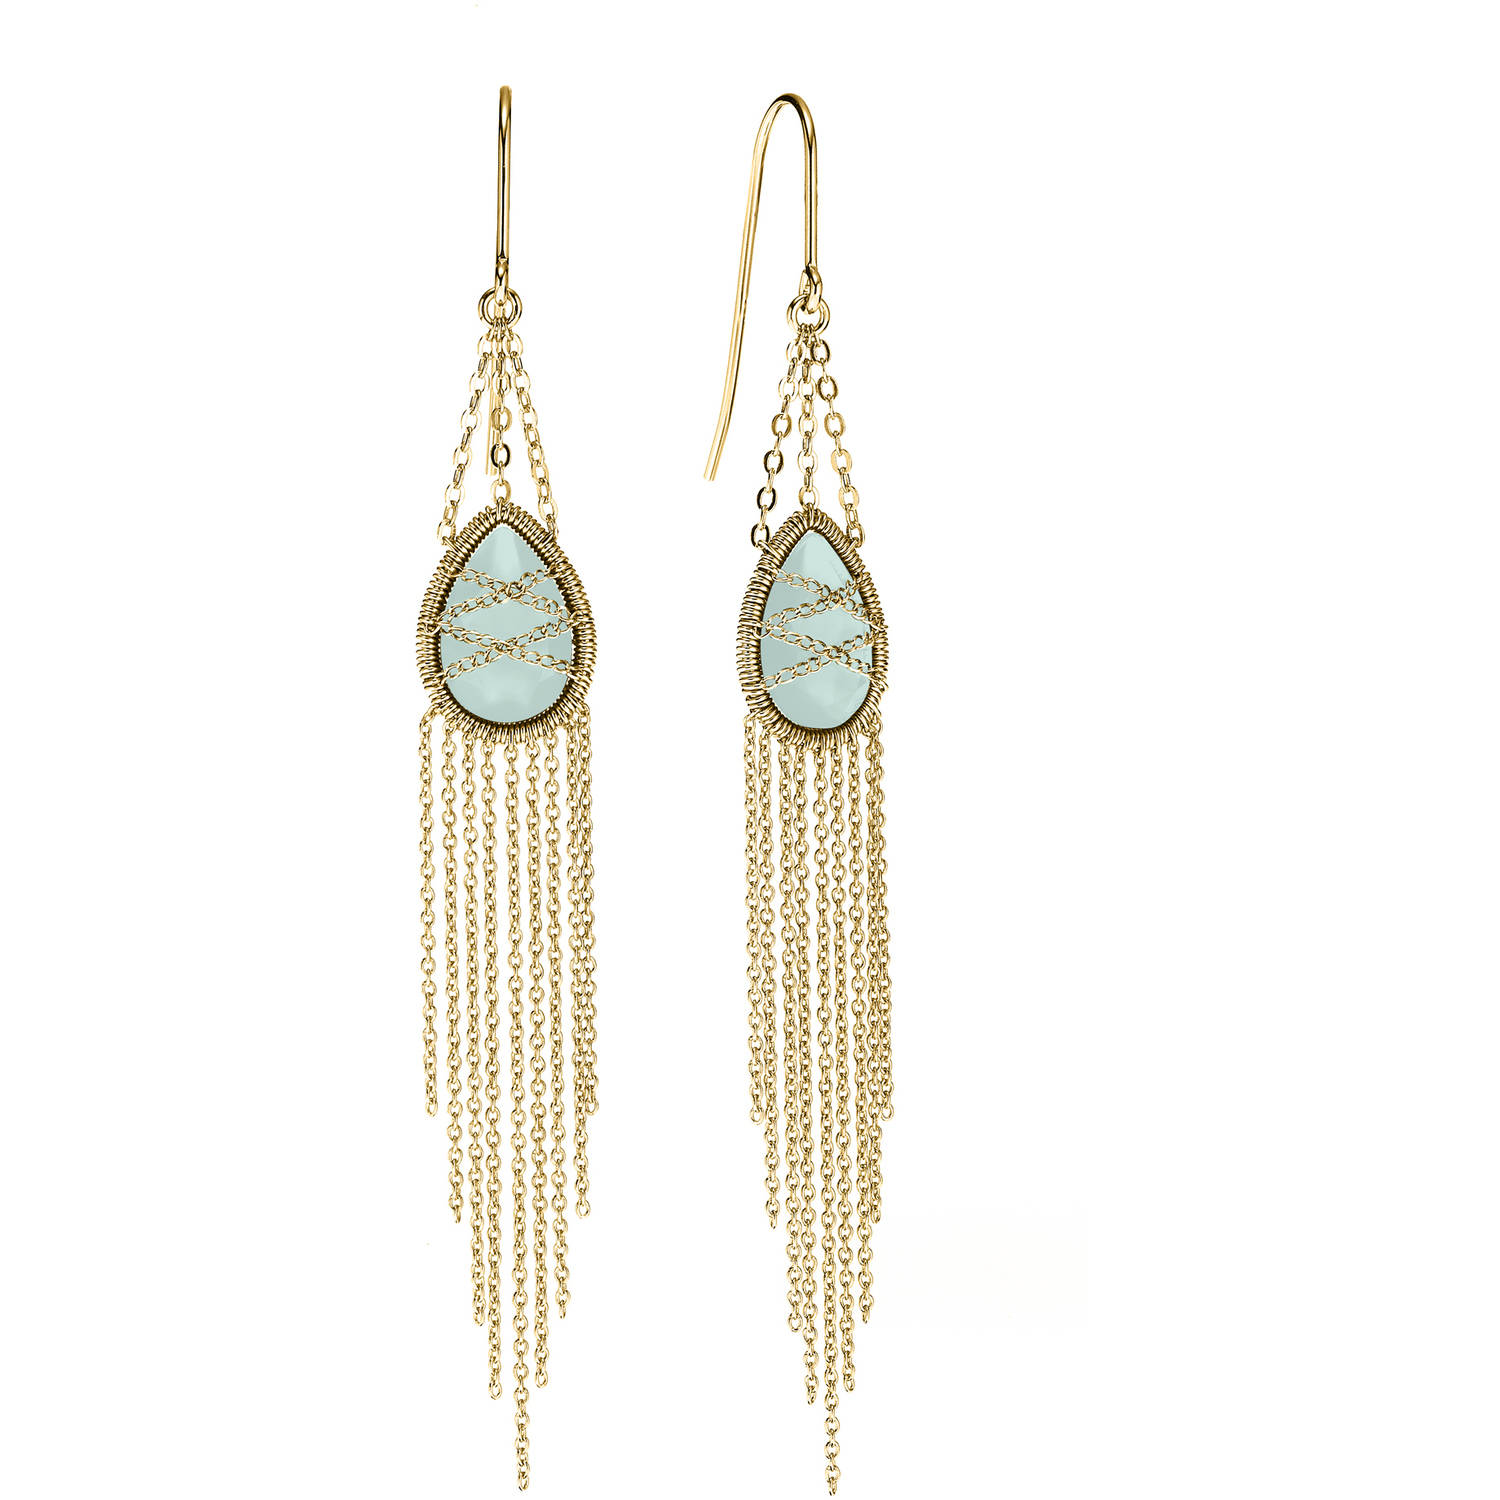 Image of 5th & Main 18kt Gold over Sterling Silver Hand-Wrapped Drape Chain Hanging Teardrop Chalcedony Stone Earrings